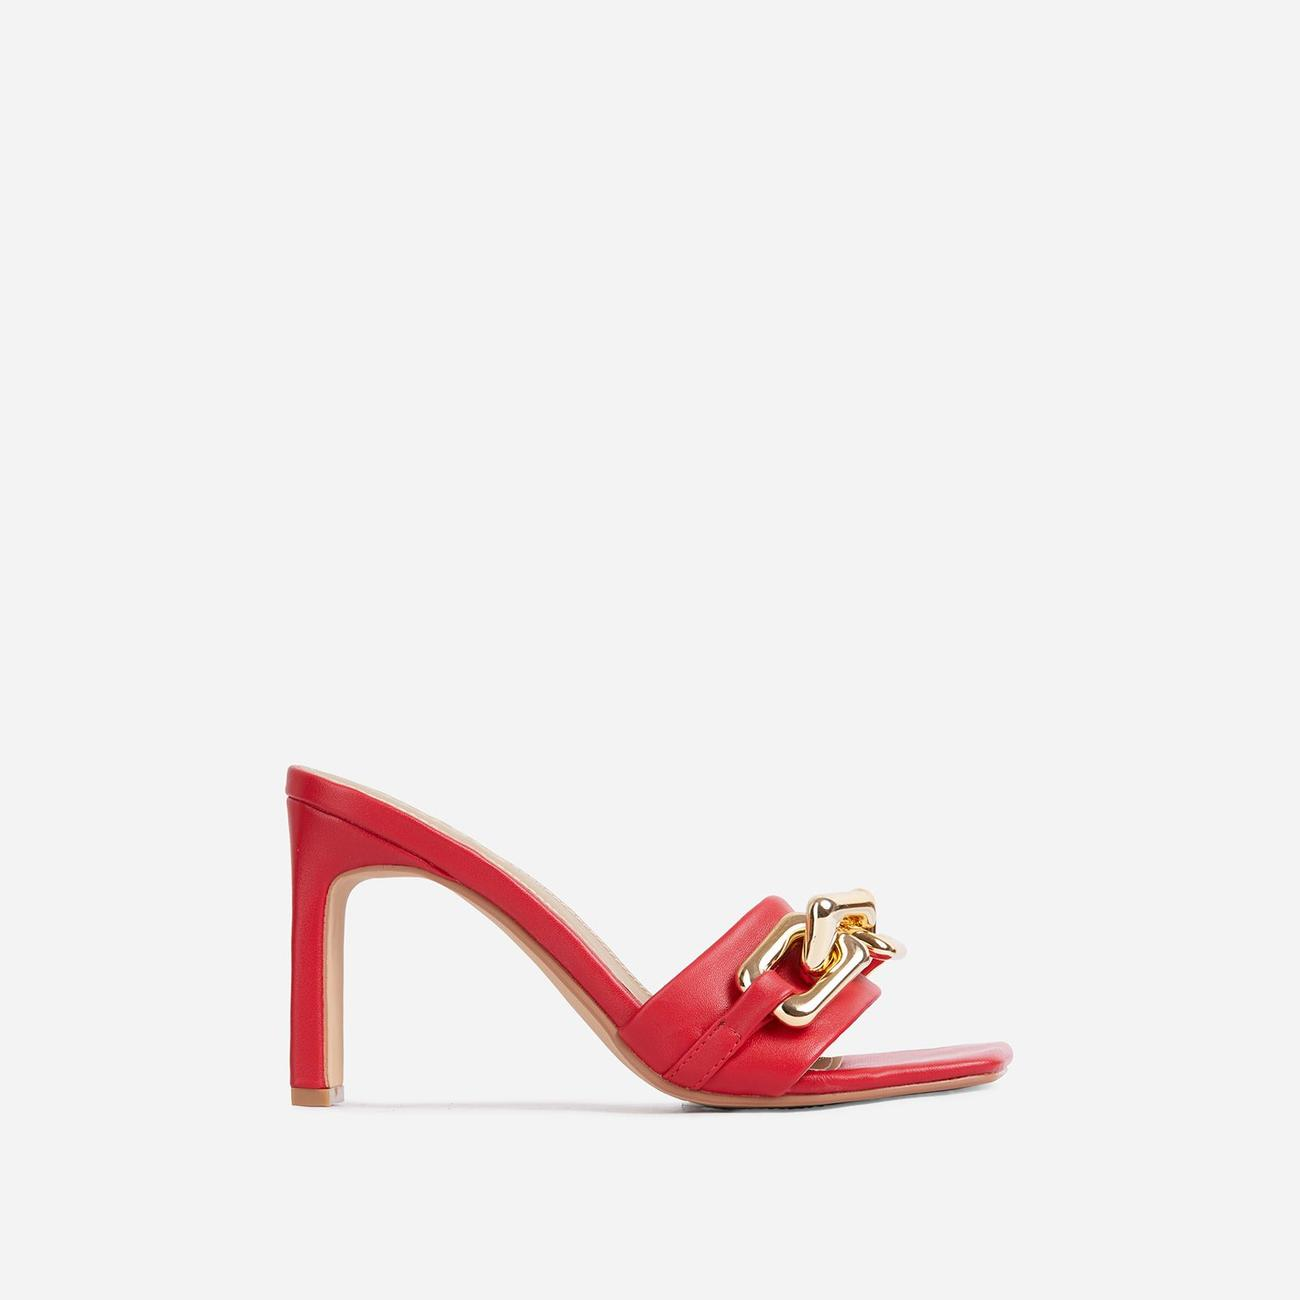 Link-Up Chunky Chain Detail Square Toe Think Block Heel Mule In Red Faux Leather Image 1